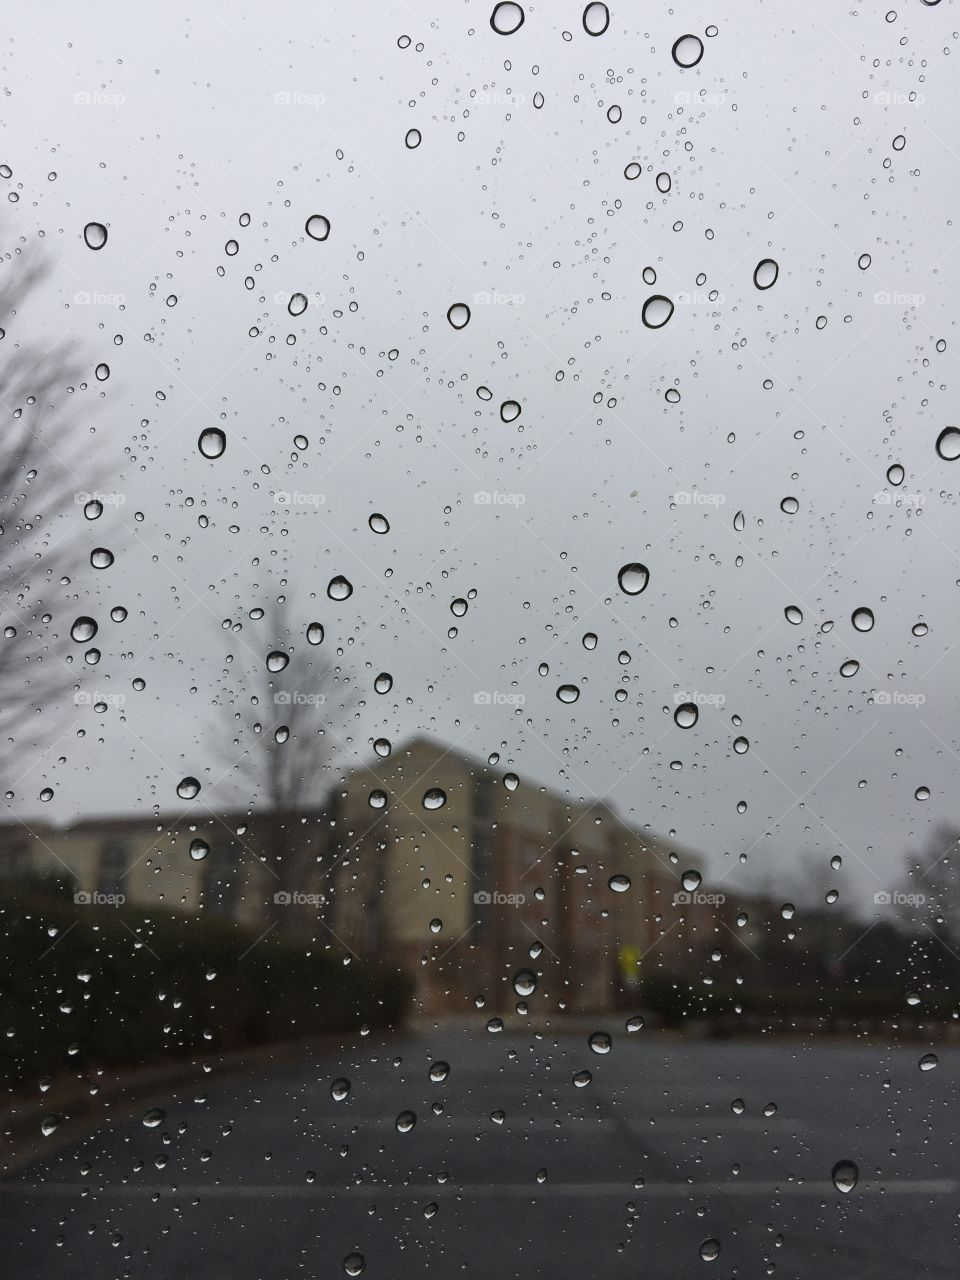 Kennesaw State University on a rainy day.